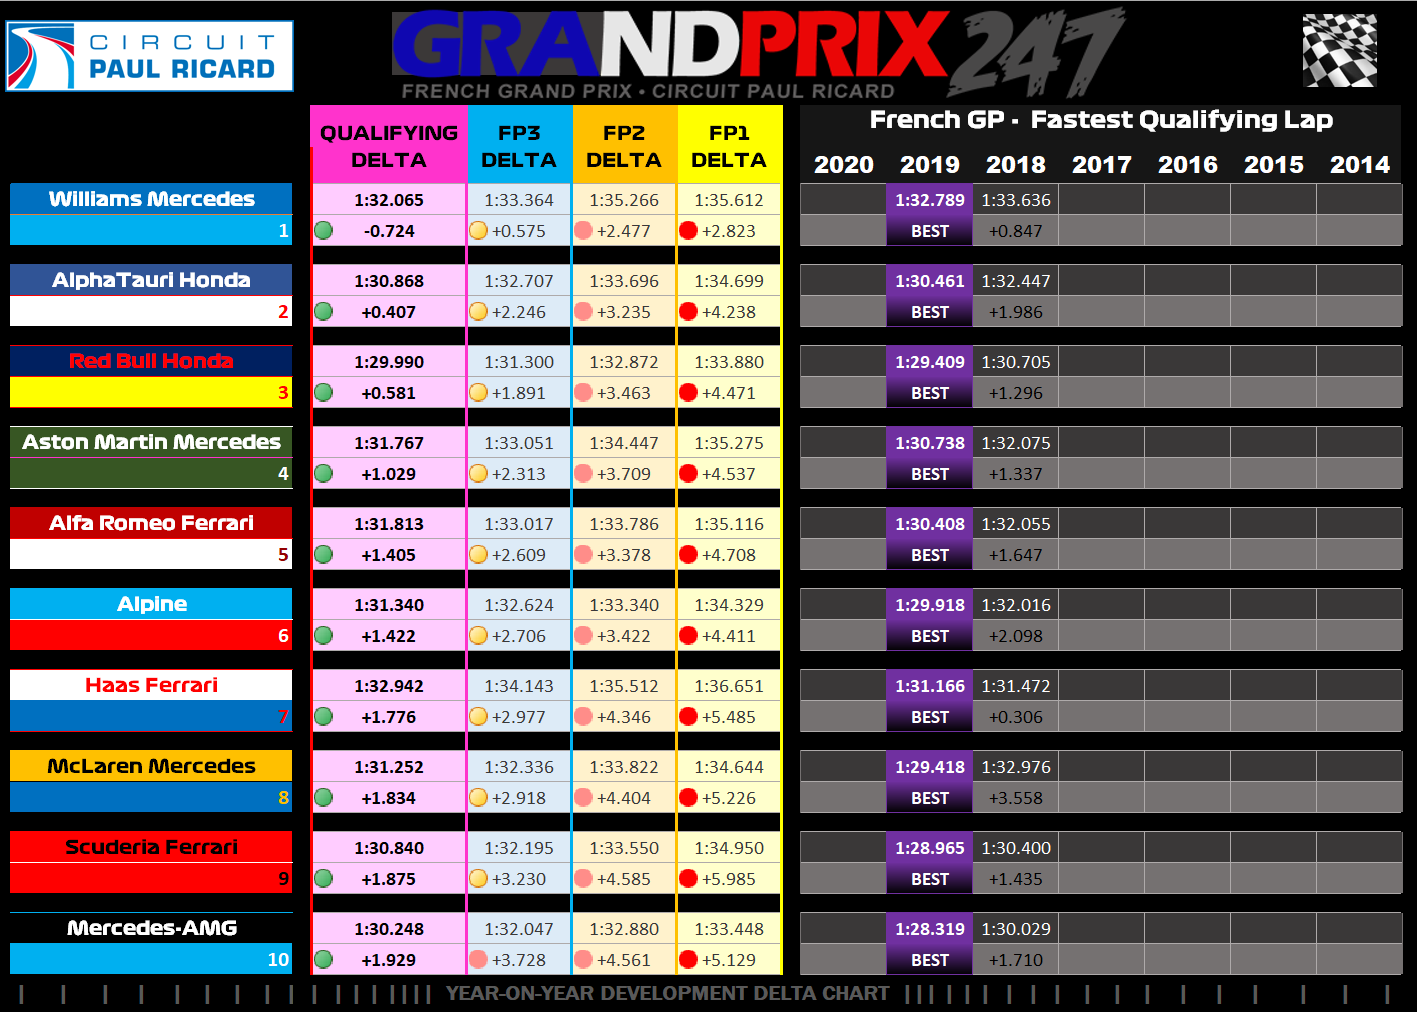 Verstappen Qualifying - Graphic - Year on Year